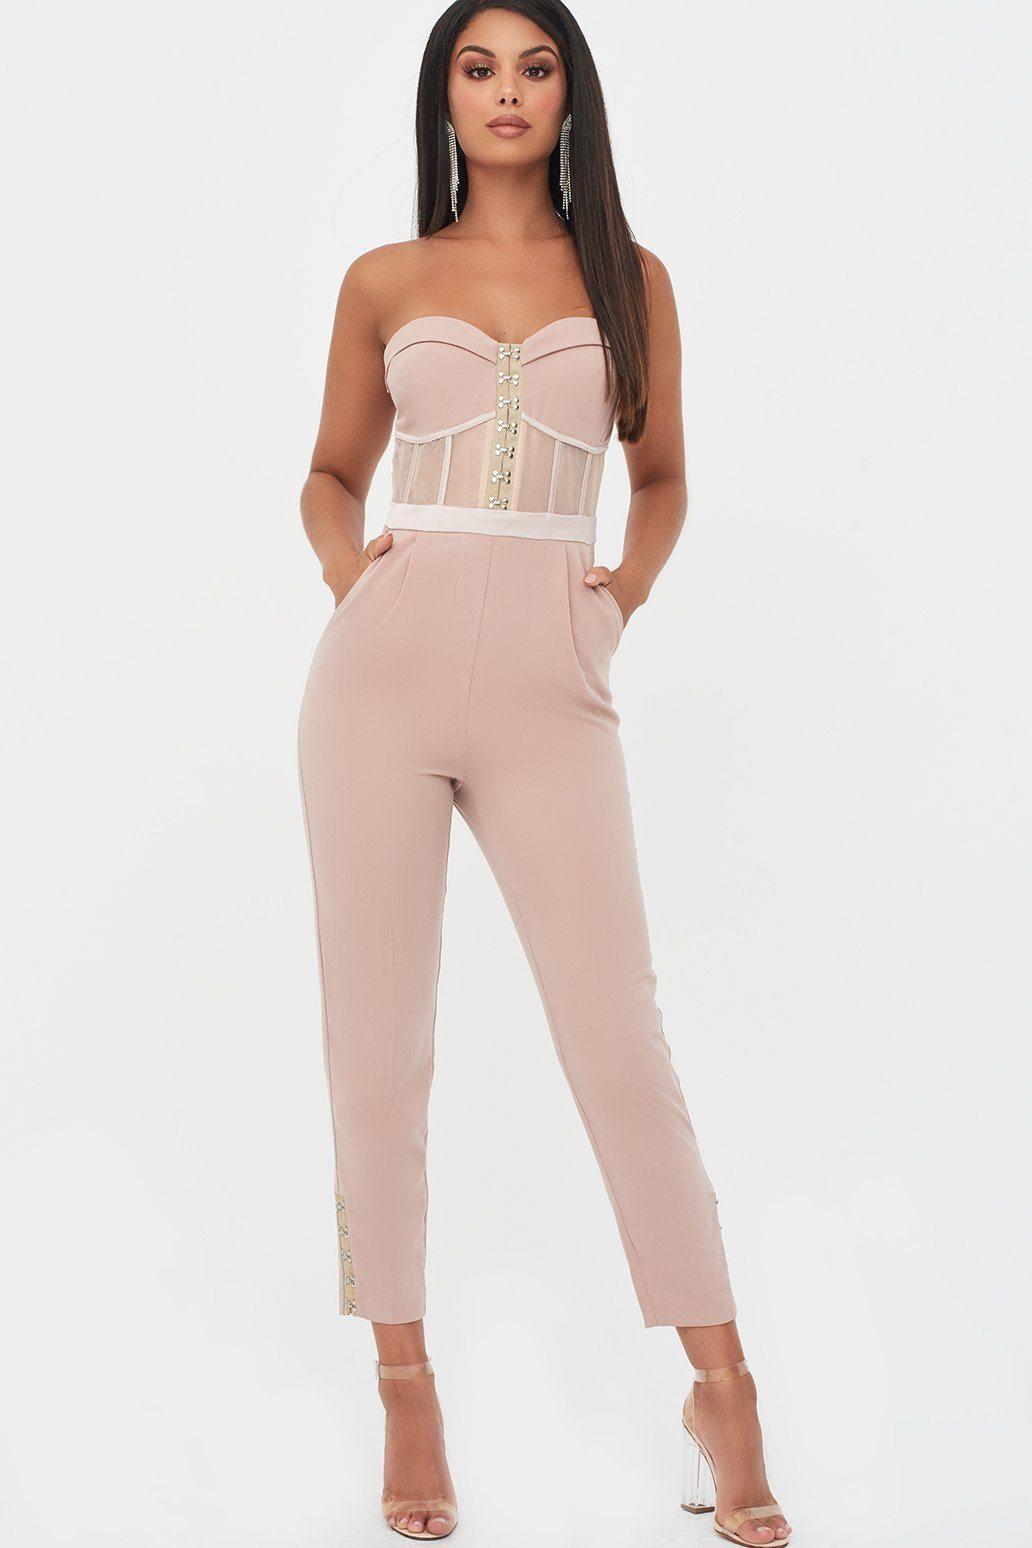 Rosie Connolly Sheer Contrast Bandeau Jumpsuit in Mink